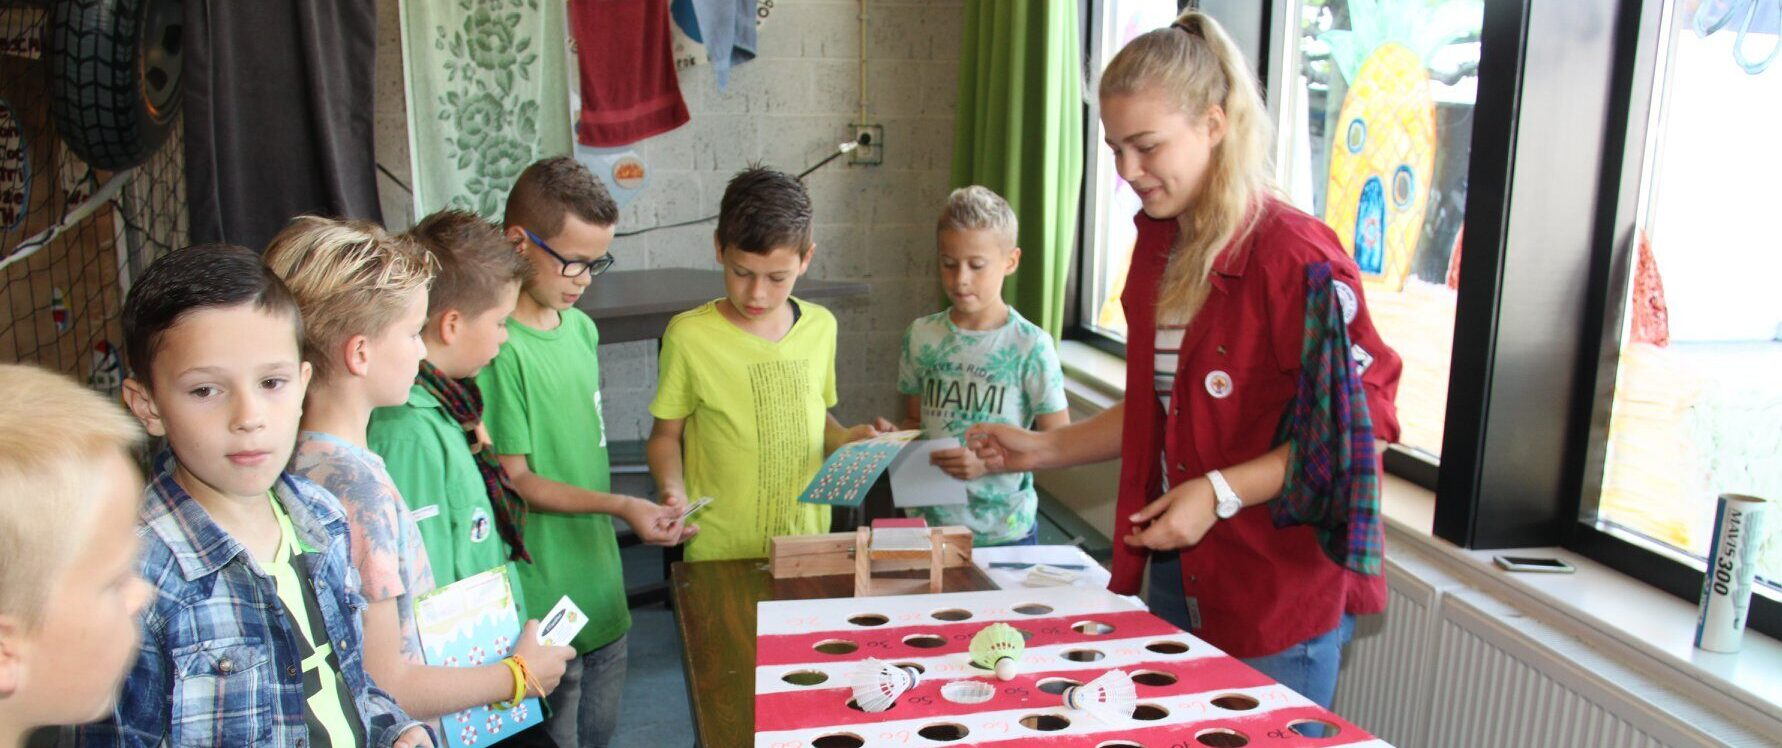 fancy fair naaldwijk kinderactiviteiten